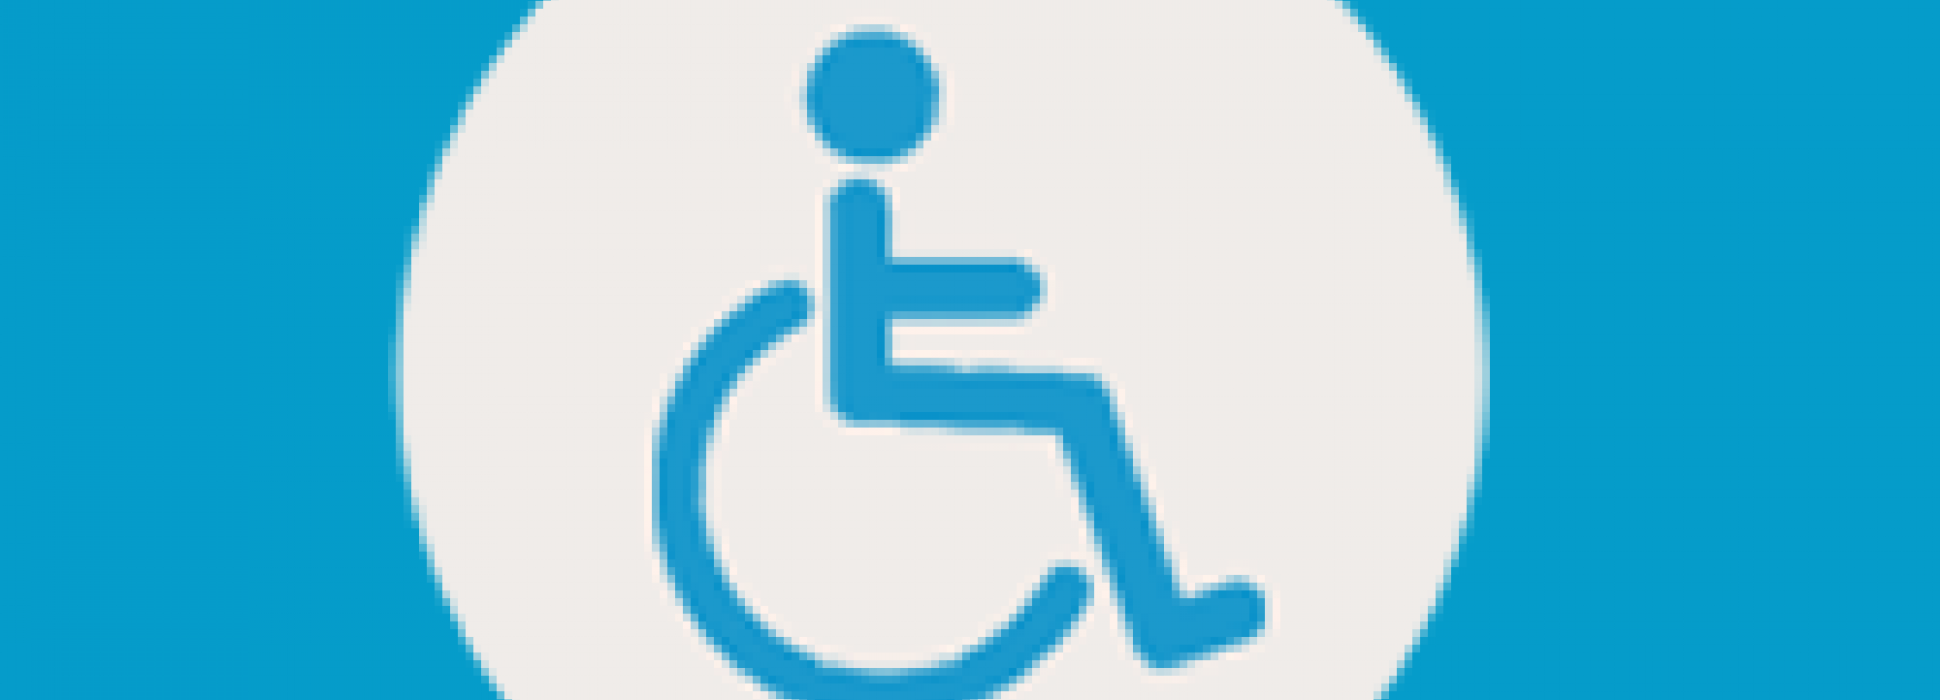 New online services for people with limited mobility